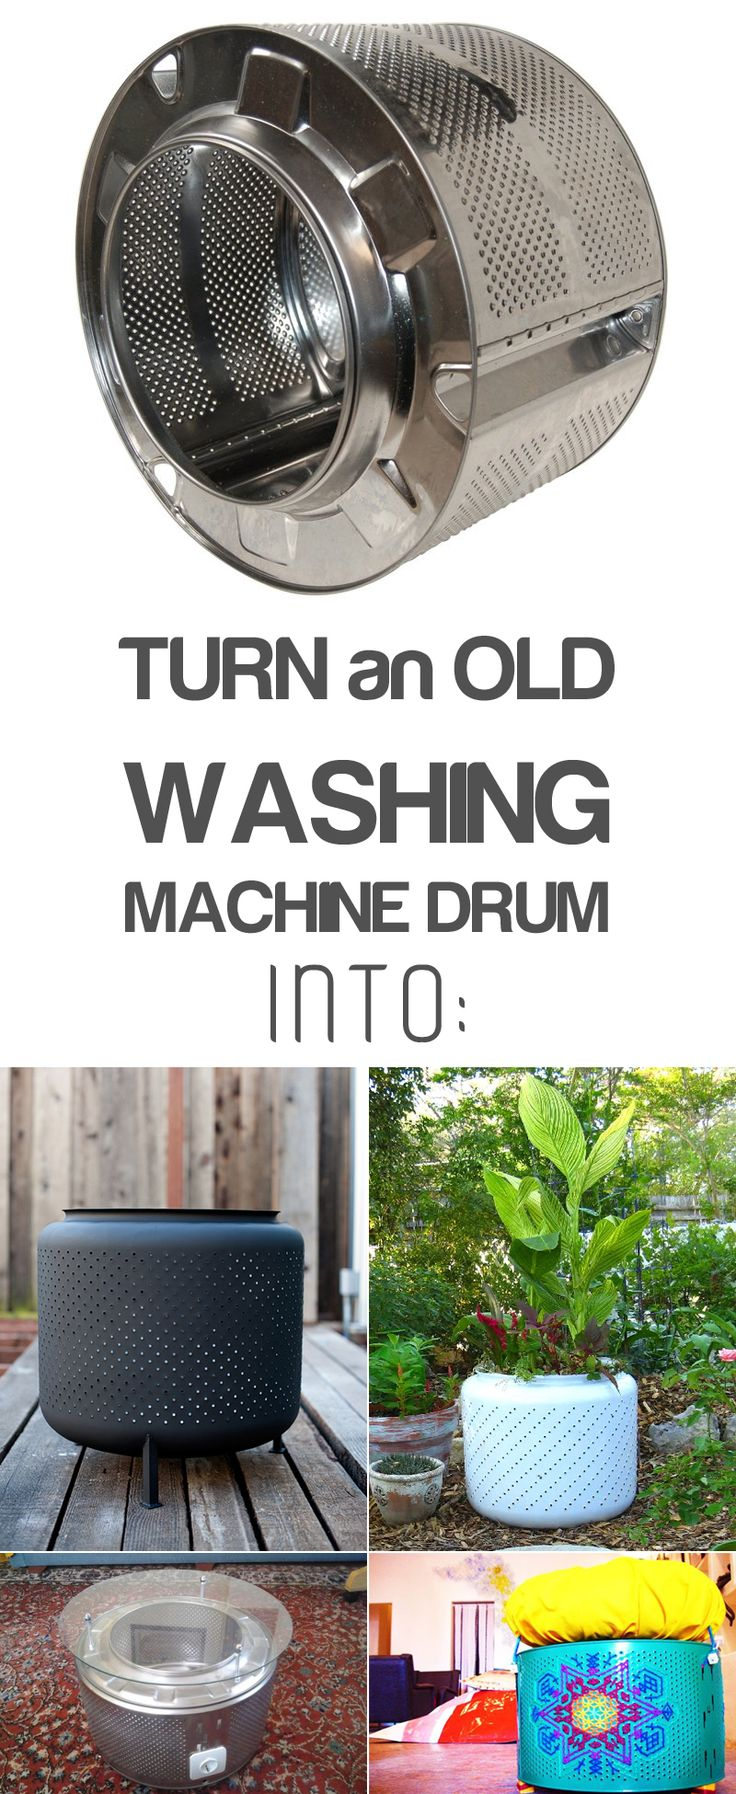 100 ways to recycle - 12 Creative Ways To Recycle Washing Machine Drums